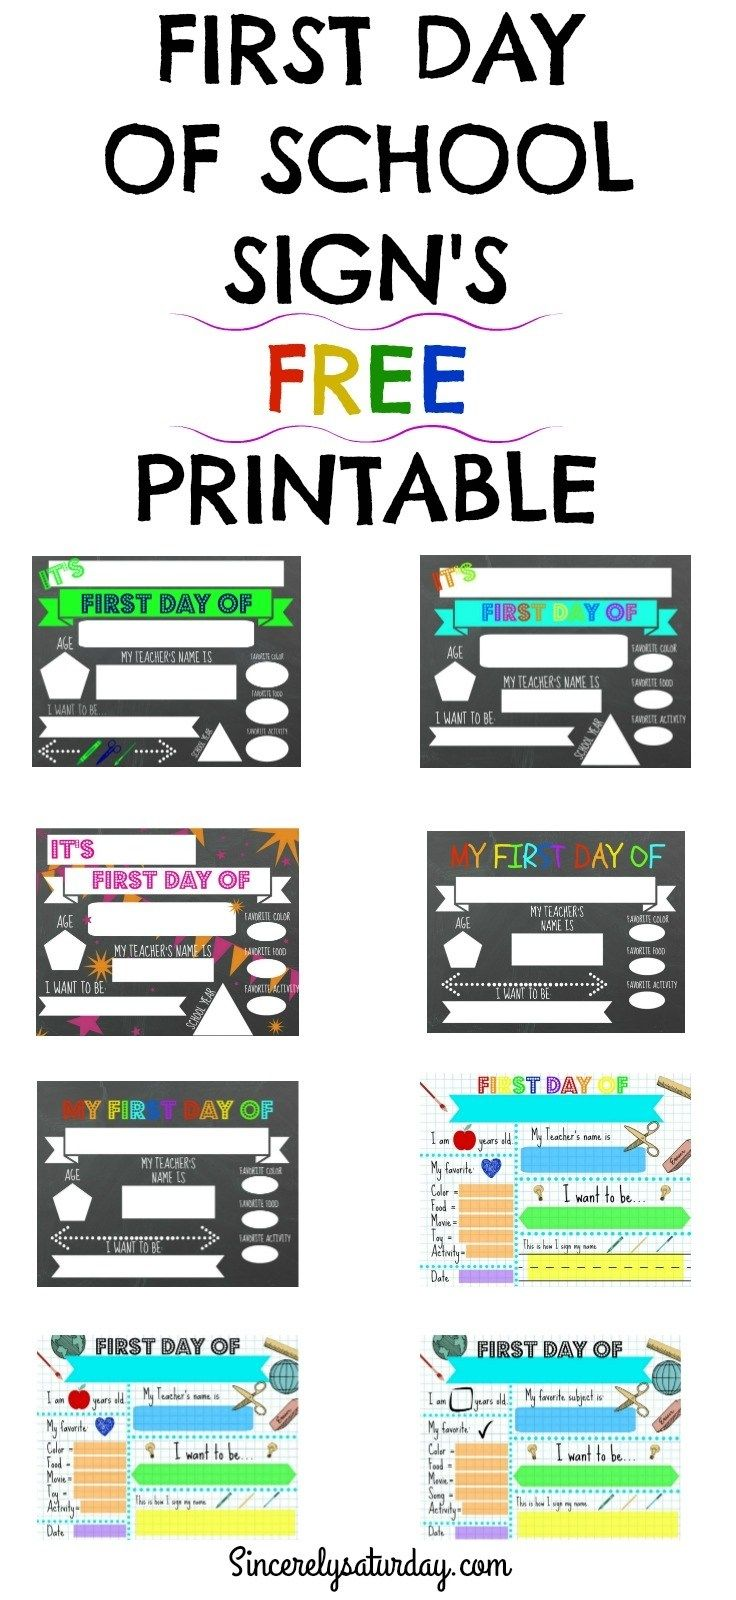 FREE PRINTABLE FIRST DAY OF SCHOOL SIGNS #firstdayofschoolsign